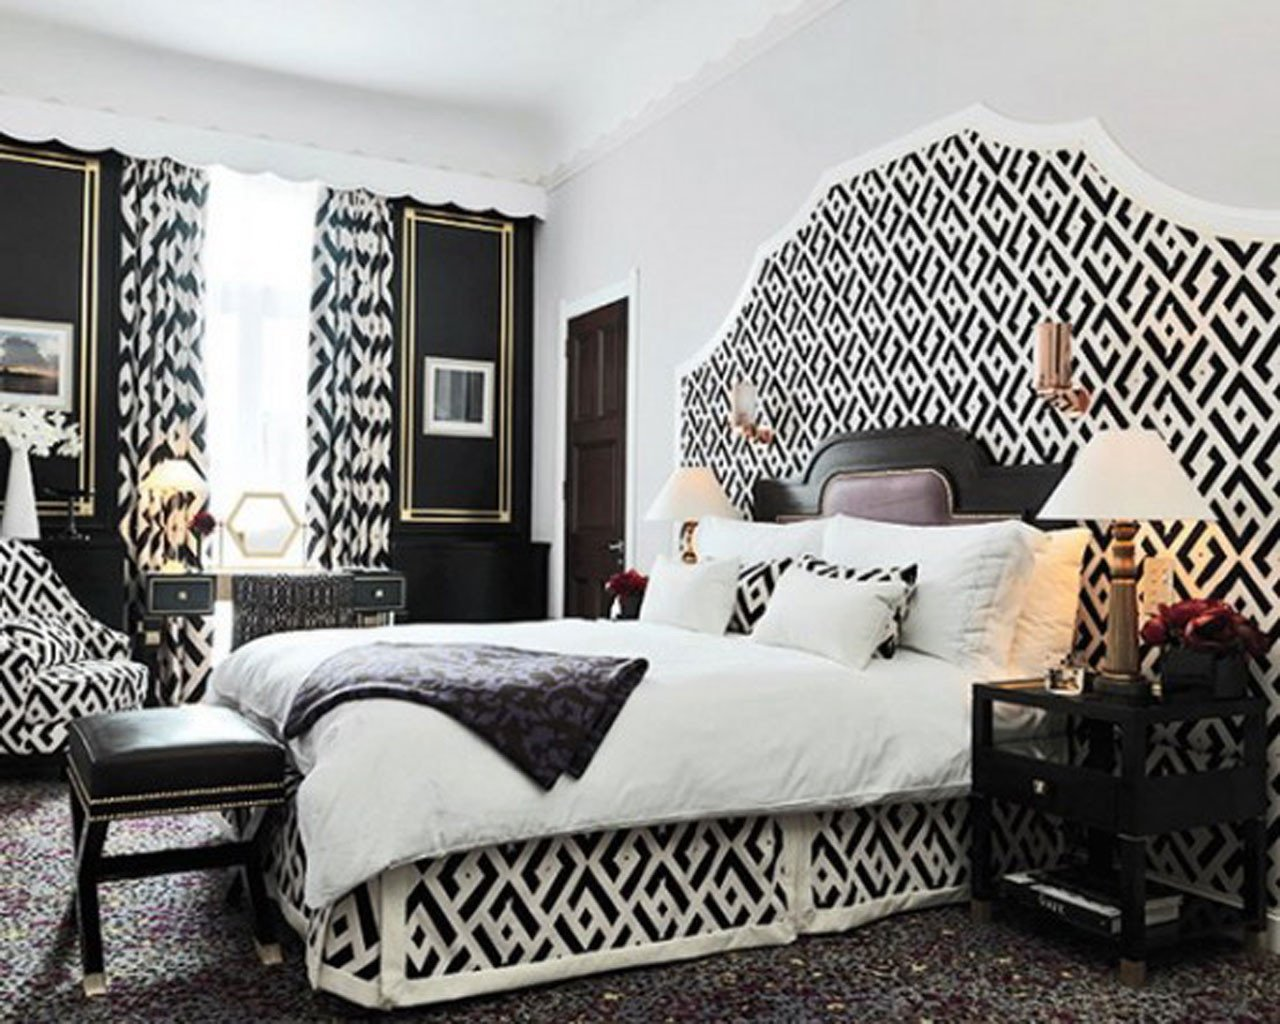 Black and White Room Decor Best Of Black and White Contemporary Interior Design Ideas for Your Dream Home Homesthetics